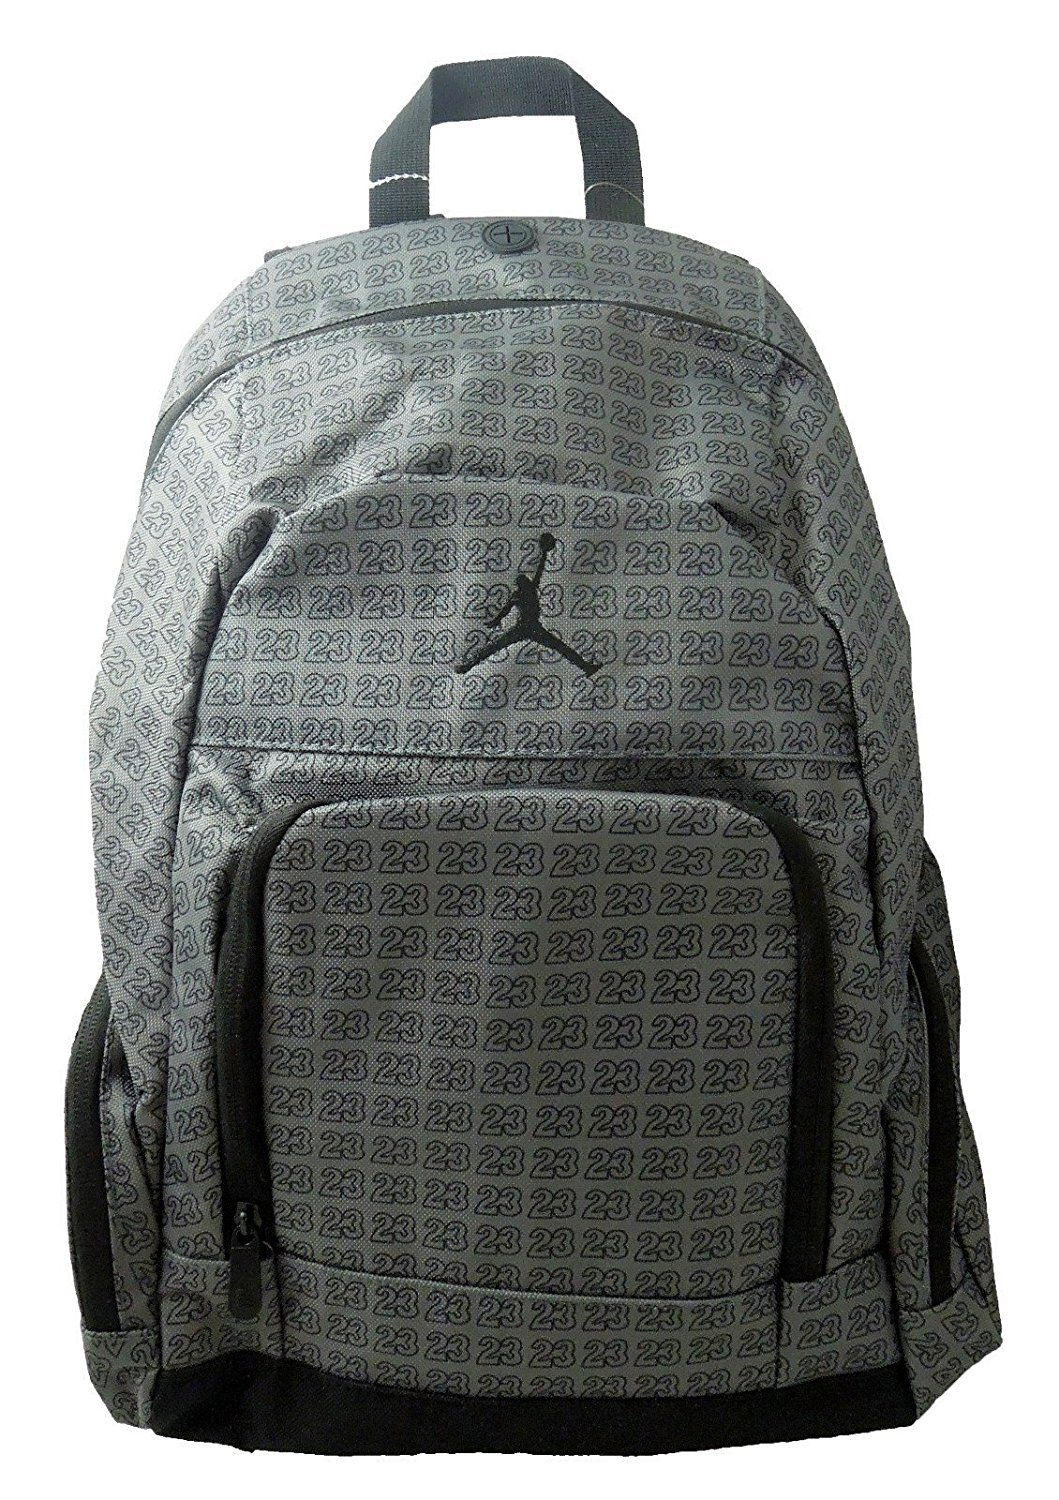 1c8da5ccfdfdc3 Nike Jordan Jumpman23 Backpack   Check out this great image   Backpacking  backpack